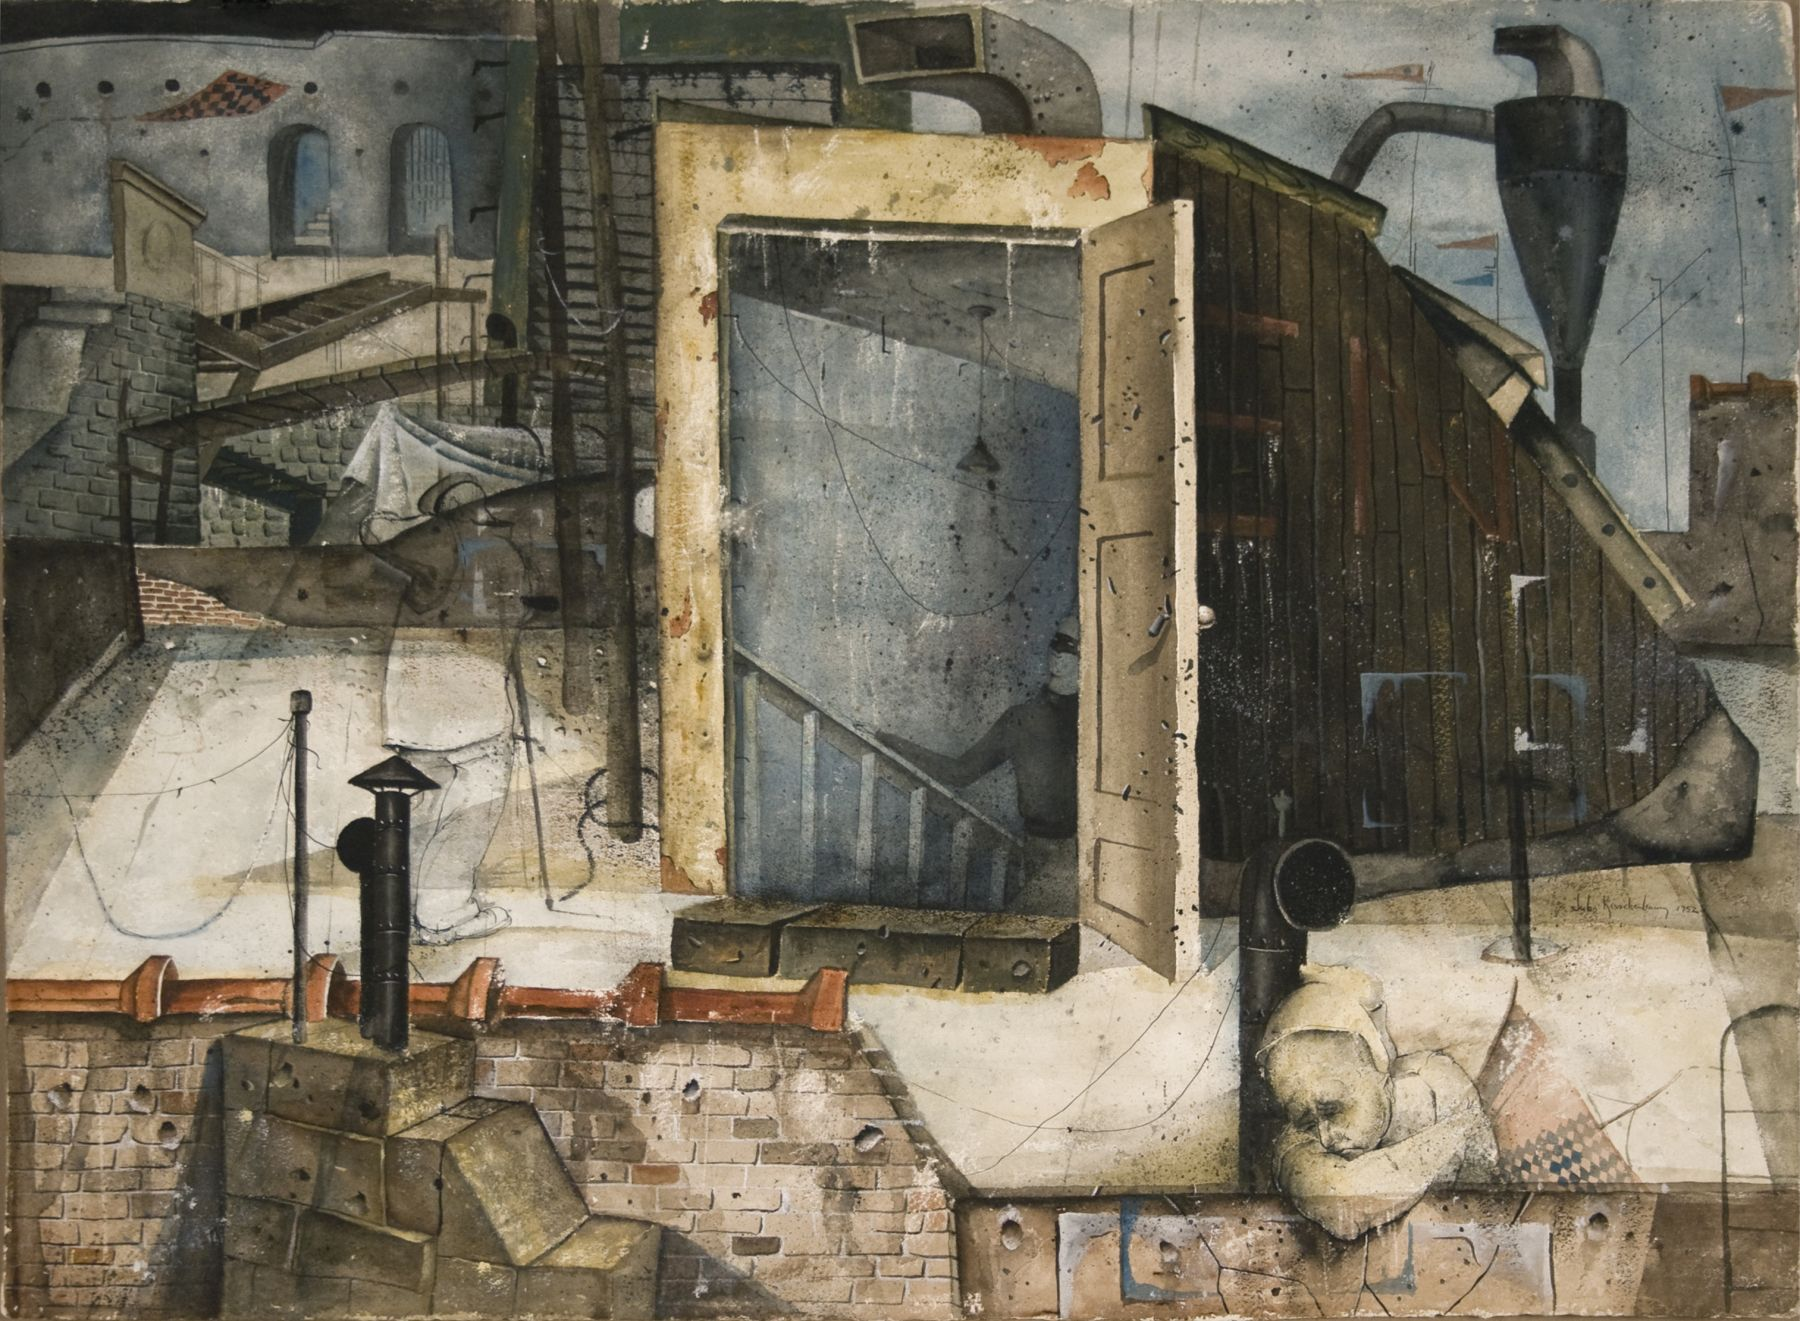 Jules Kirschenbaum, The Silent Time, 1952, watercolor and ink on paper, 22 3/4 x 30 3/4 inches